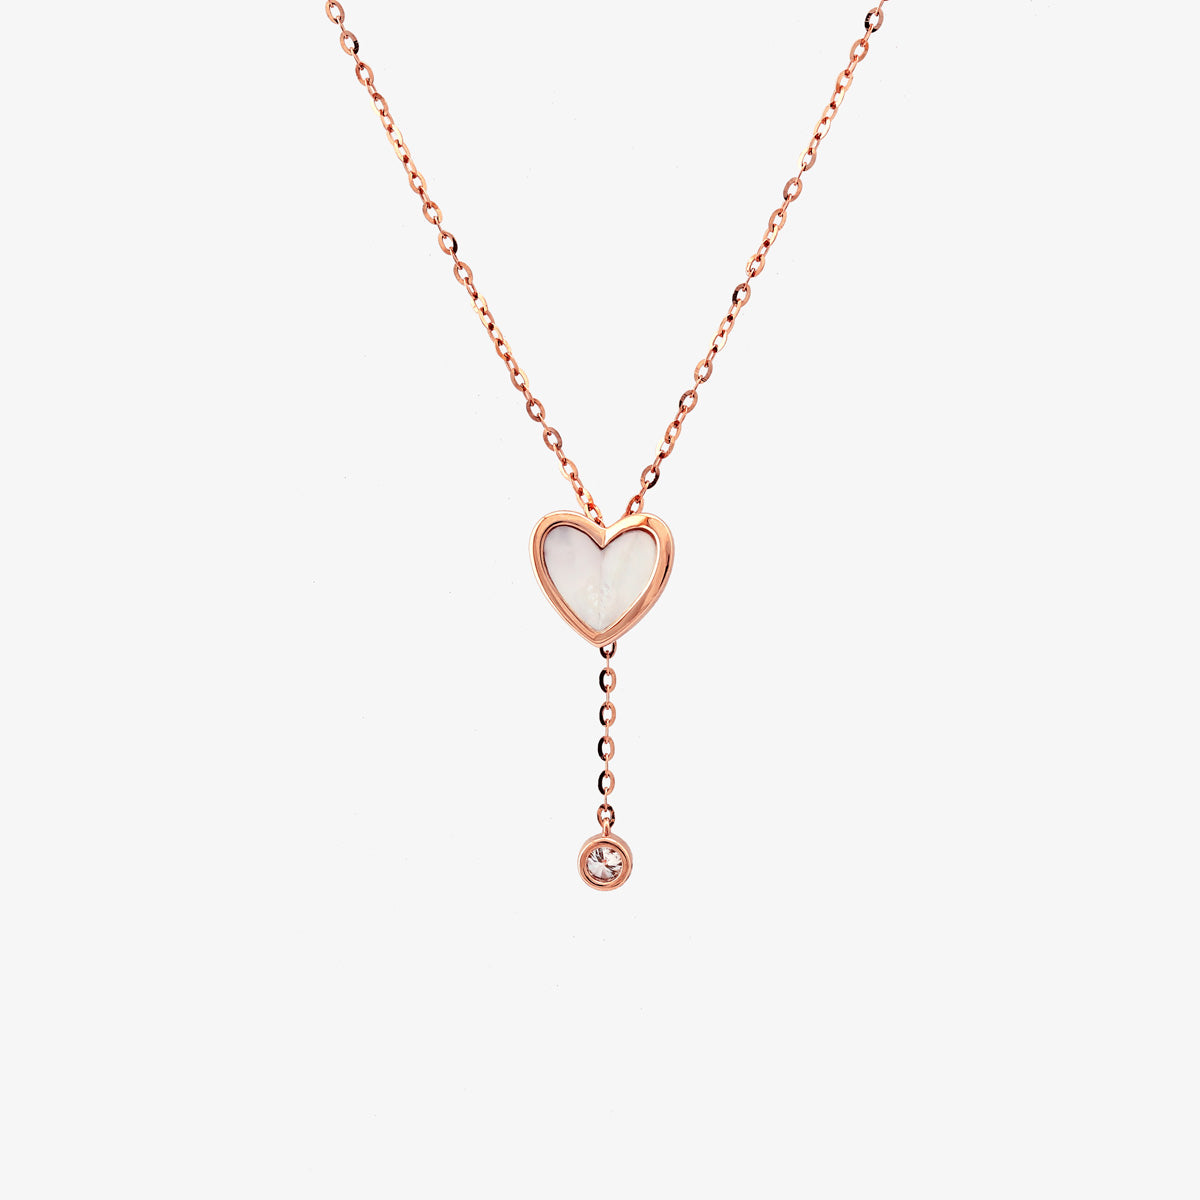 Heart Shape Pearl And Diamond Lariat Necklace - estellacollection